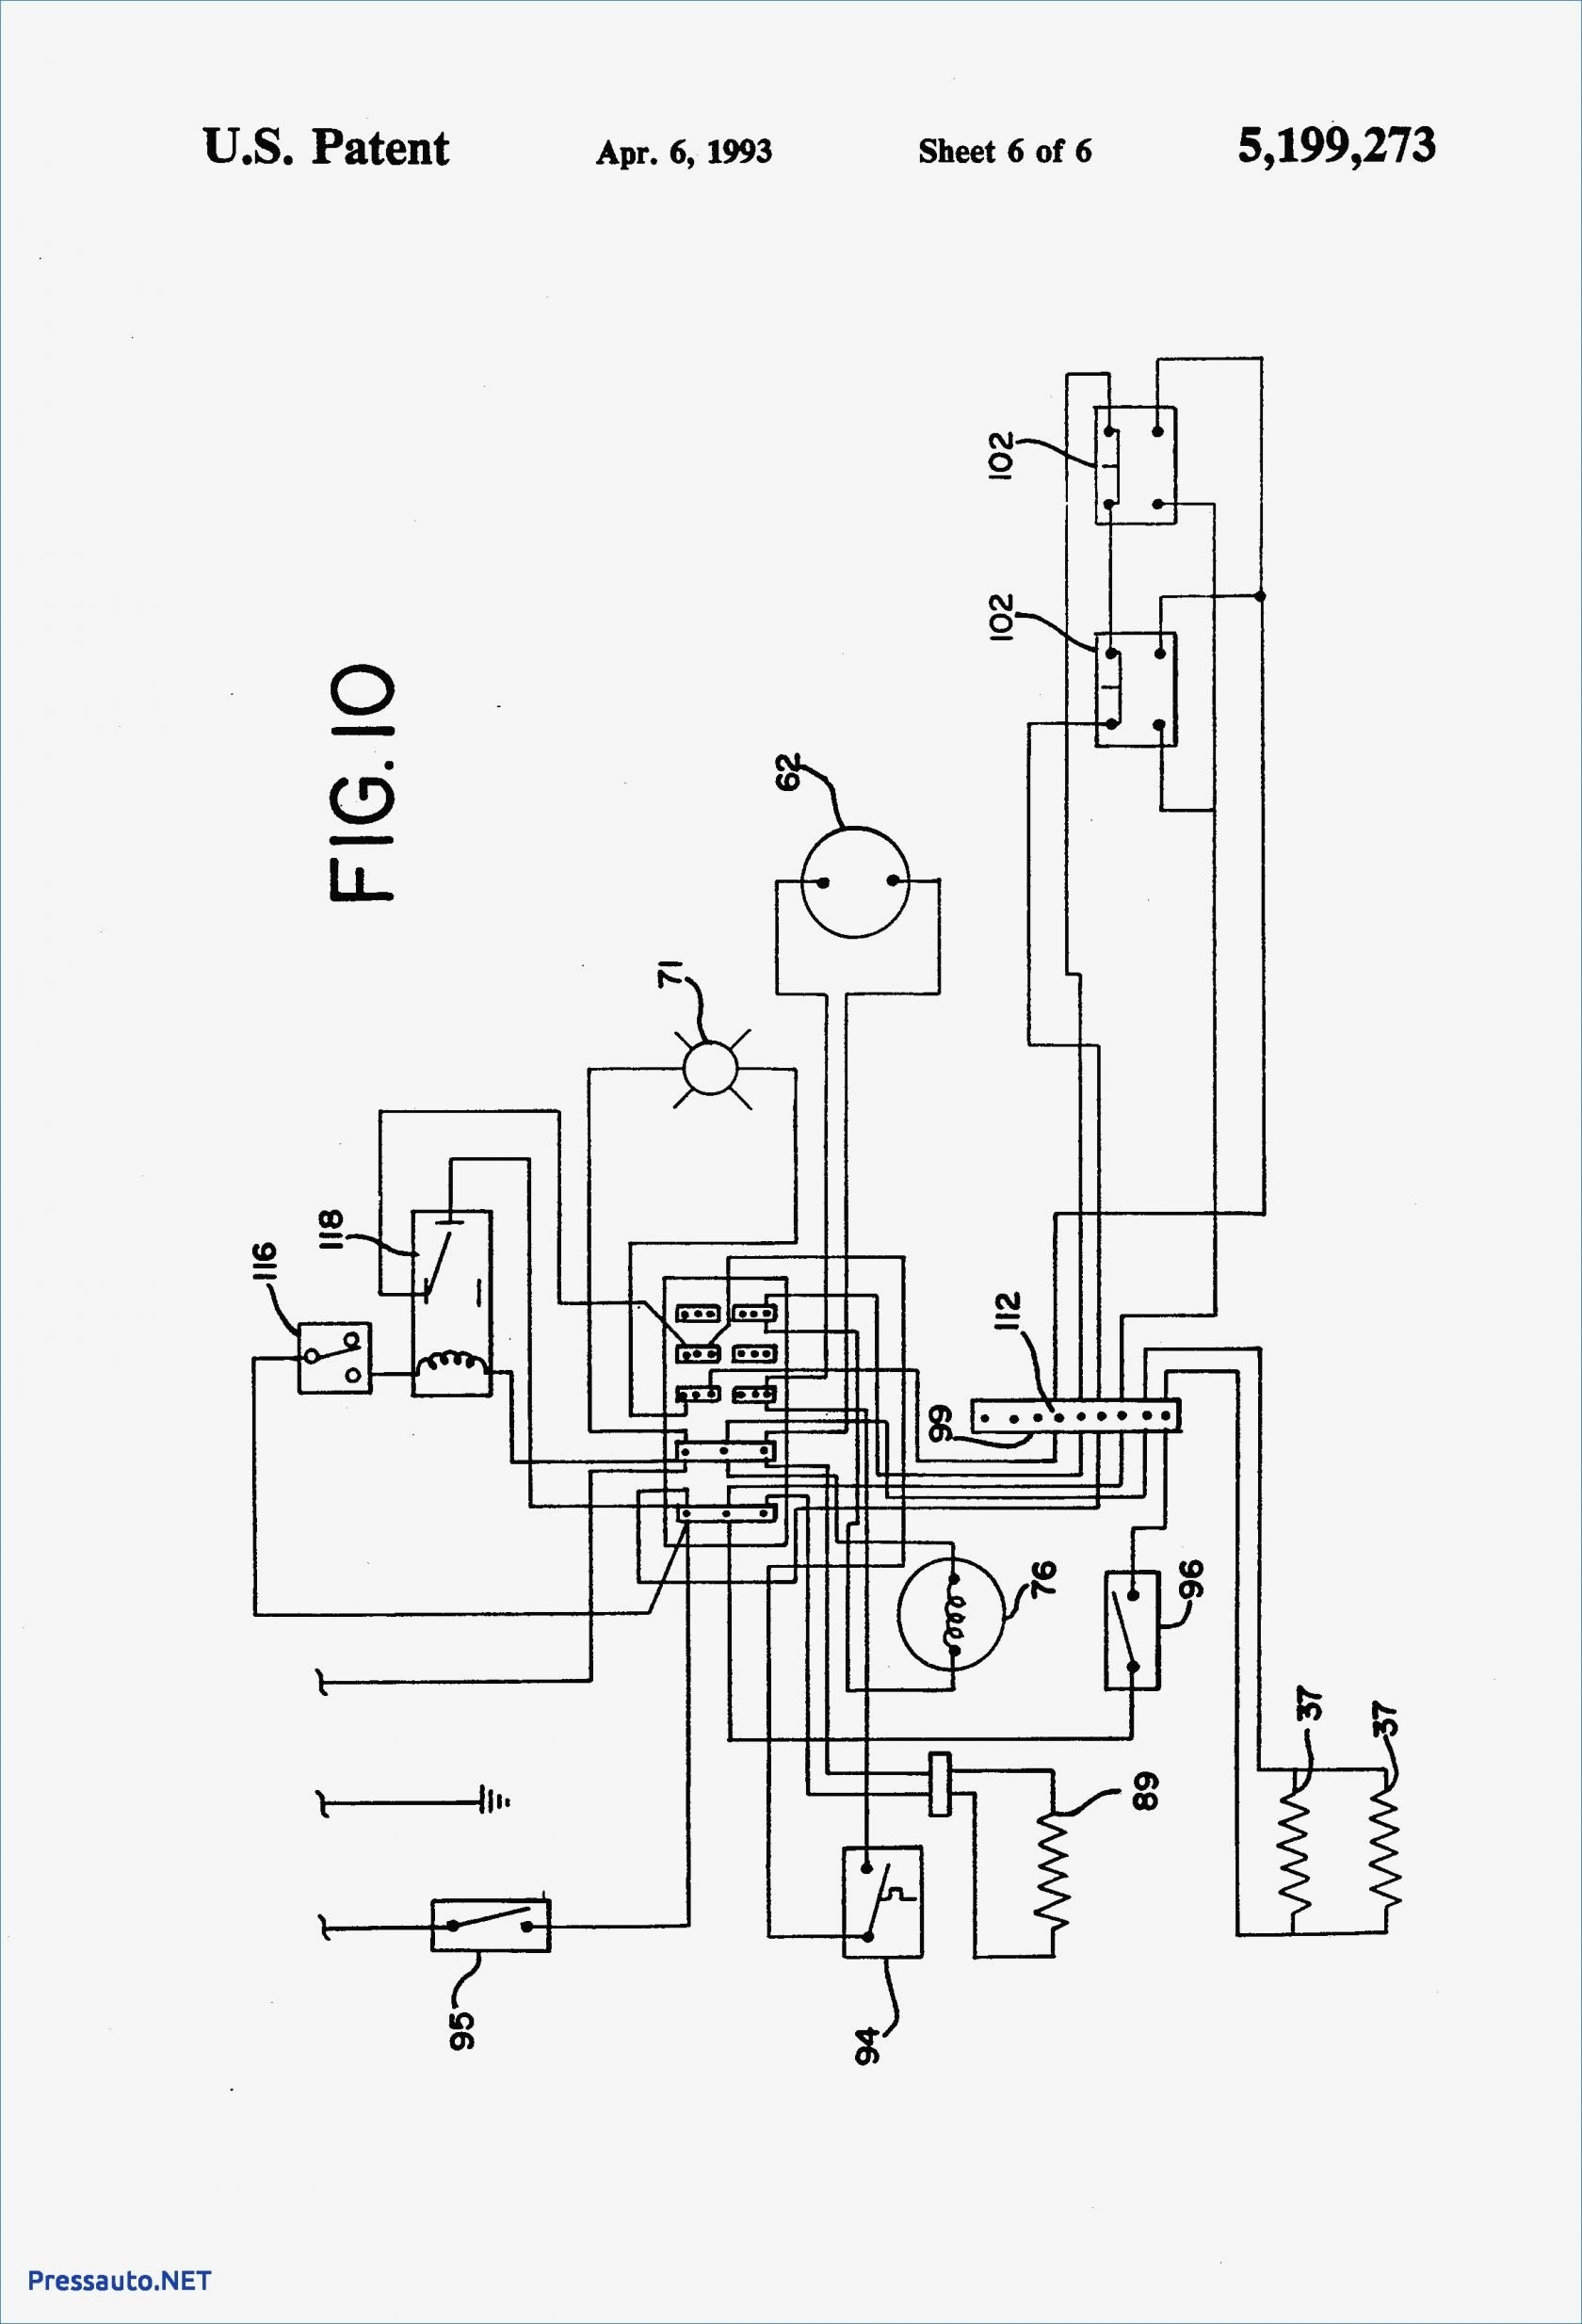 true t 72f wiring diagram true freezer t 23f wiring diagram | free wiring diagram true freezer t 49f wiring diagram